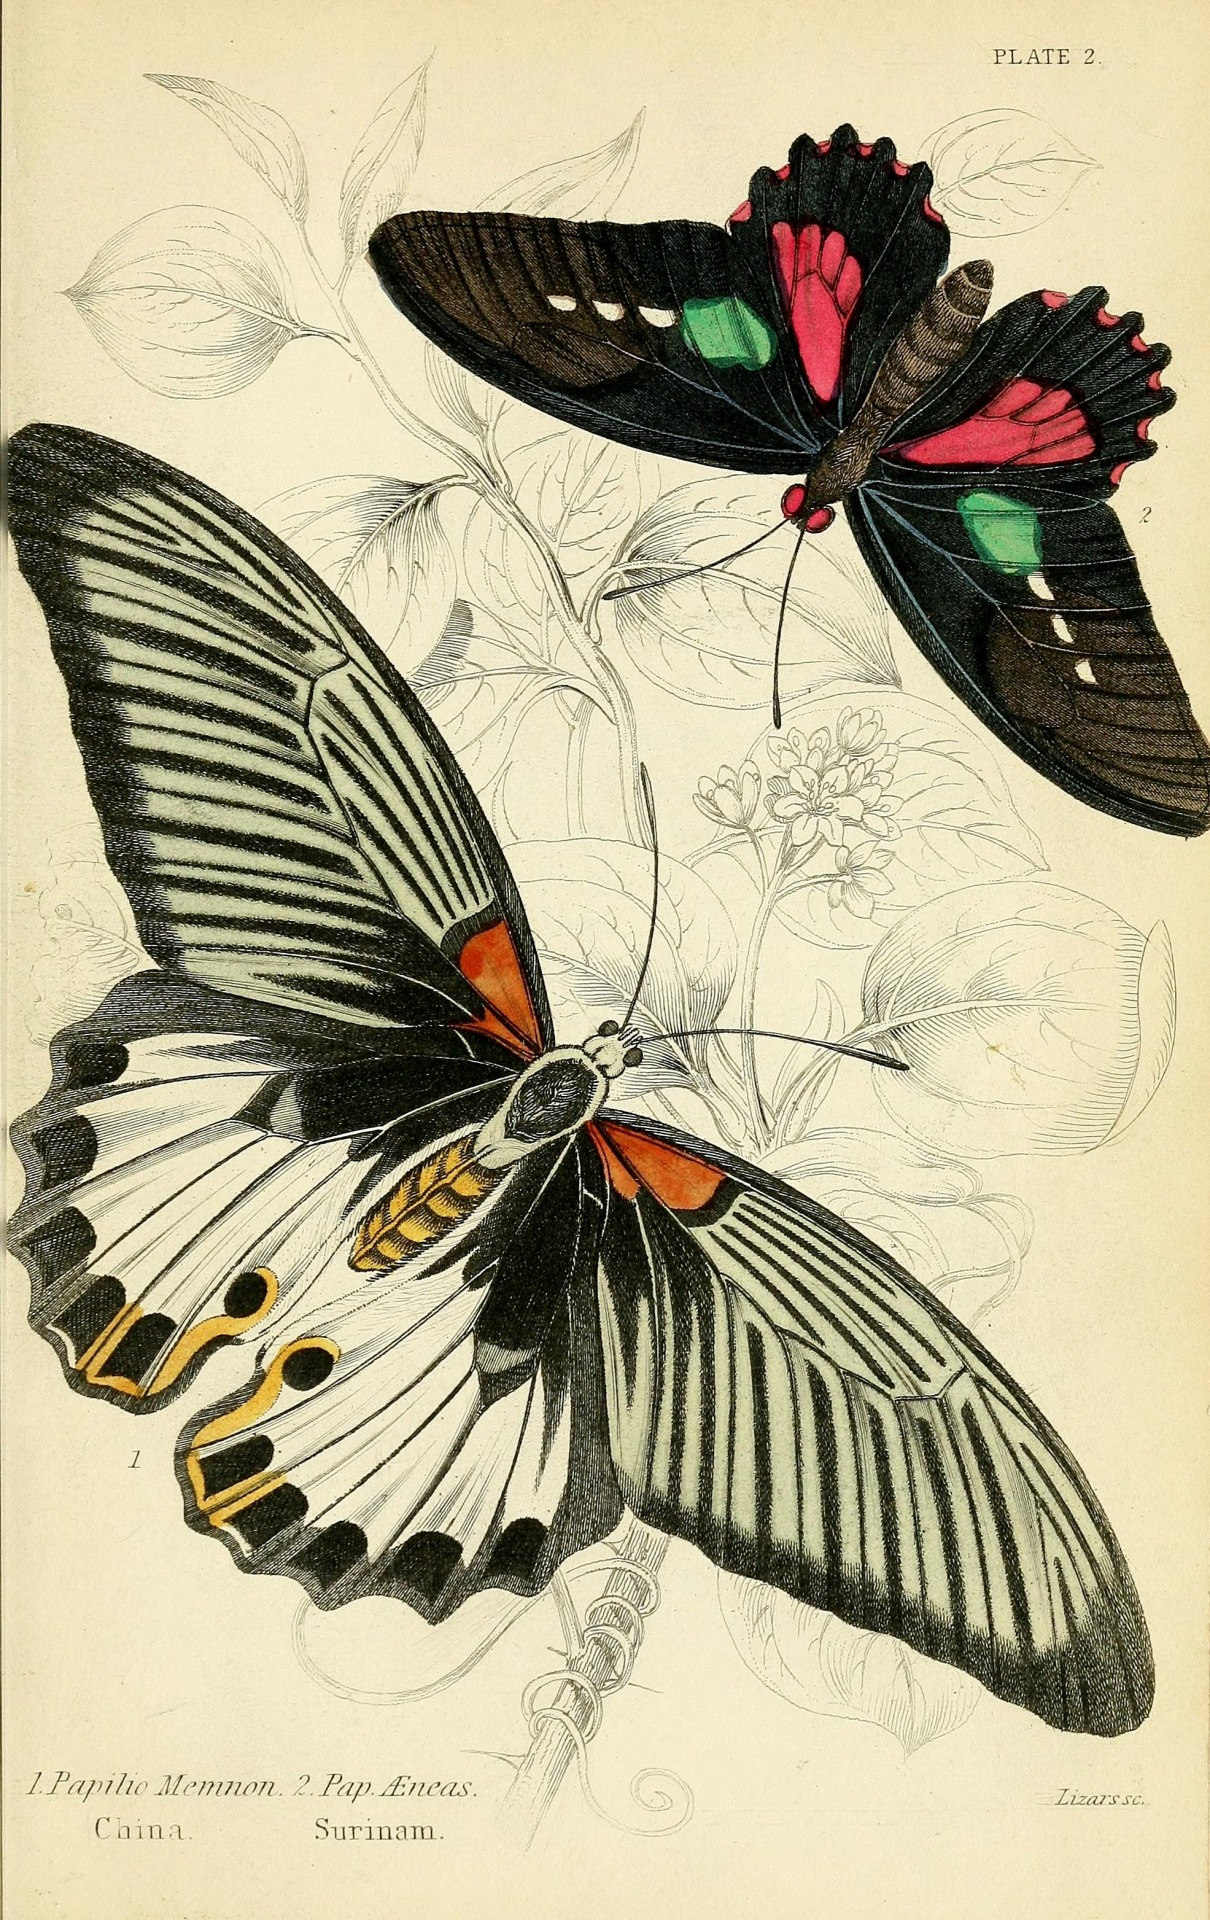 from Foreign Butterflies: http://www.biodiversitylibrary.org/bibliography/44242#/summary